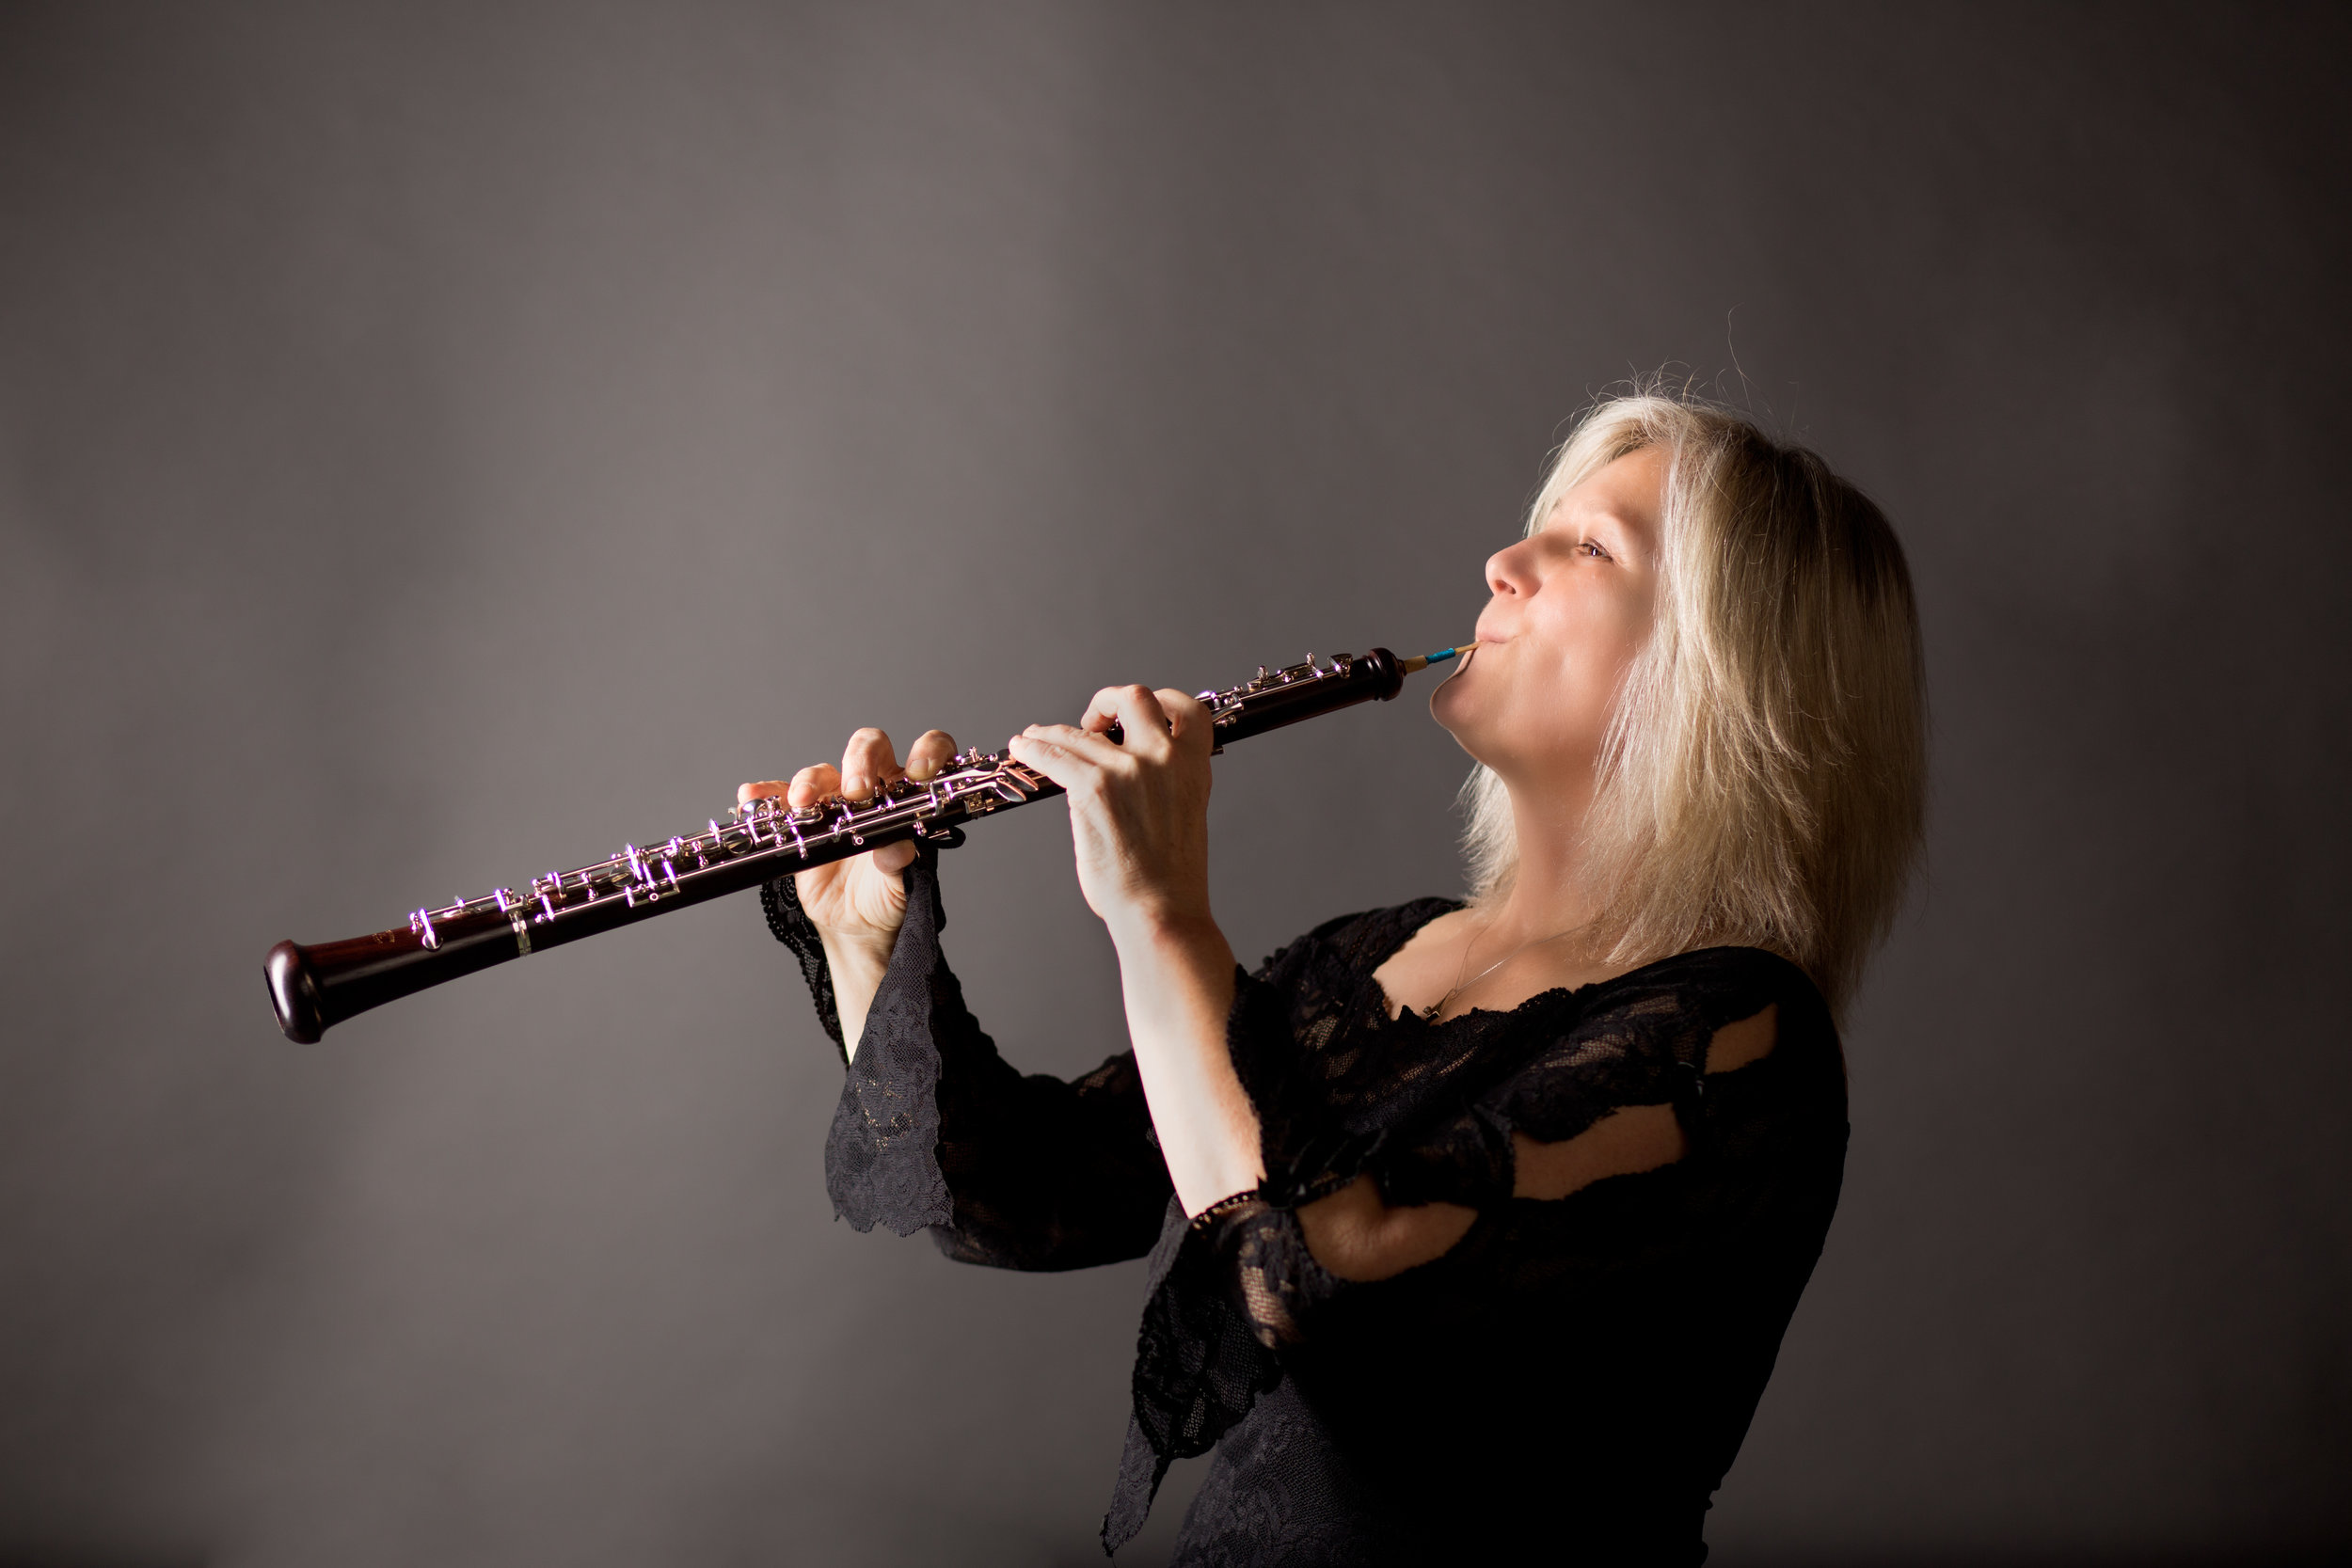 """Cheryl Wefler, principal oboe - Cheryl Wefler regularly performs with the Eugene Symphony, Oregon Mozart Players, Eugene Opera Orchestra and the Eugene Concert Choir, and other groups in Eugene and on the Oregon Coast. She has performed across the country in venues that have included Wolf Trap, Opera at John Jay, Cathedral of St. John the Divine, Opera Saratoga, numerous IDRS conventions around the country, premiered a concerto written for her in Colorado, and also a sonata written for her in the UK. She is the owner/operator of Cascade Oboe Reeds and author of """"Principles and Techniques of Oboe Reed Adjustment.""""2018-2019 Season Sponsor: Carol Crumlish"""